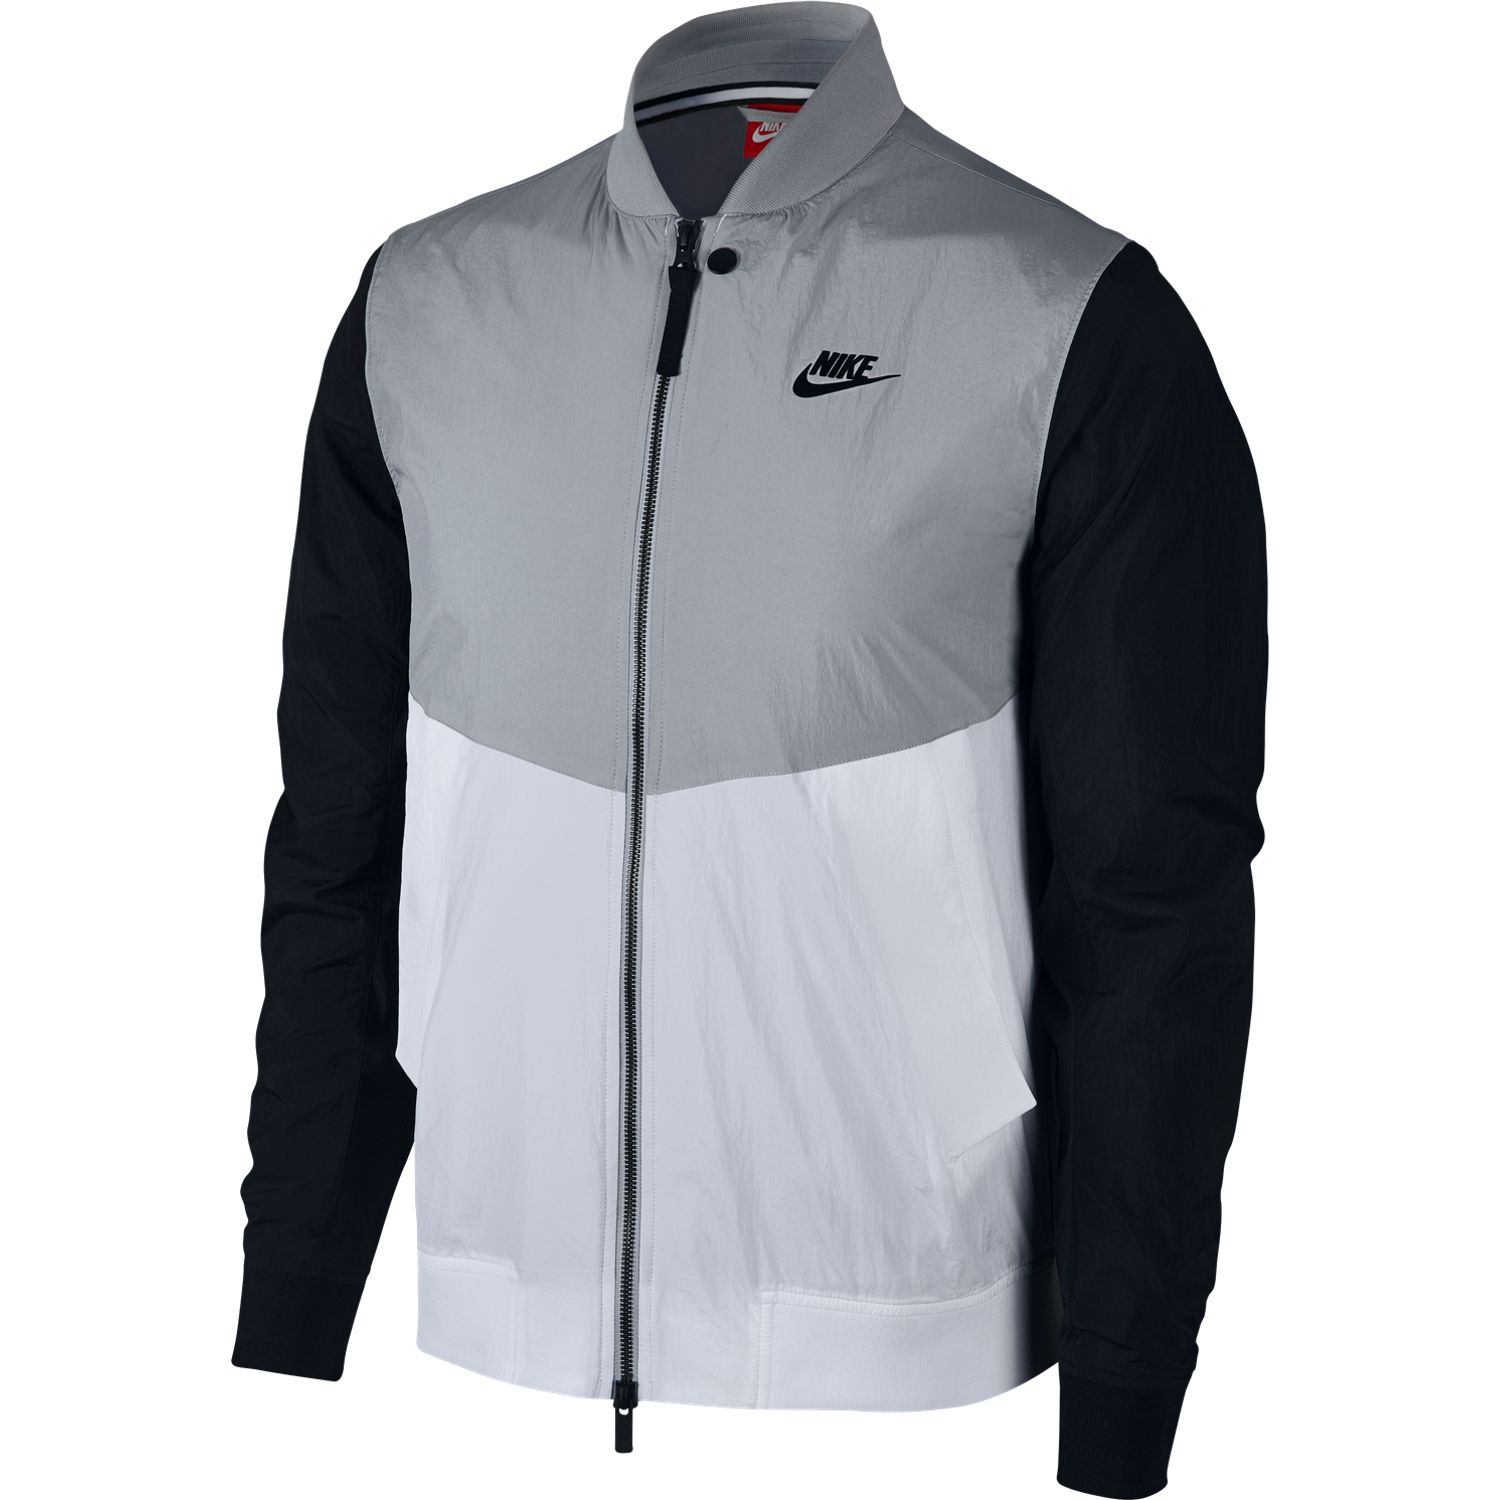 nike nike veste sportswear varsity jacket 886253 99 00 sur. Black Bedroom Furniture Sets. Home Design Ideas